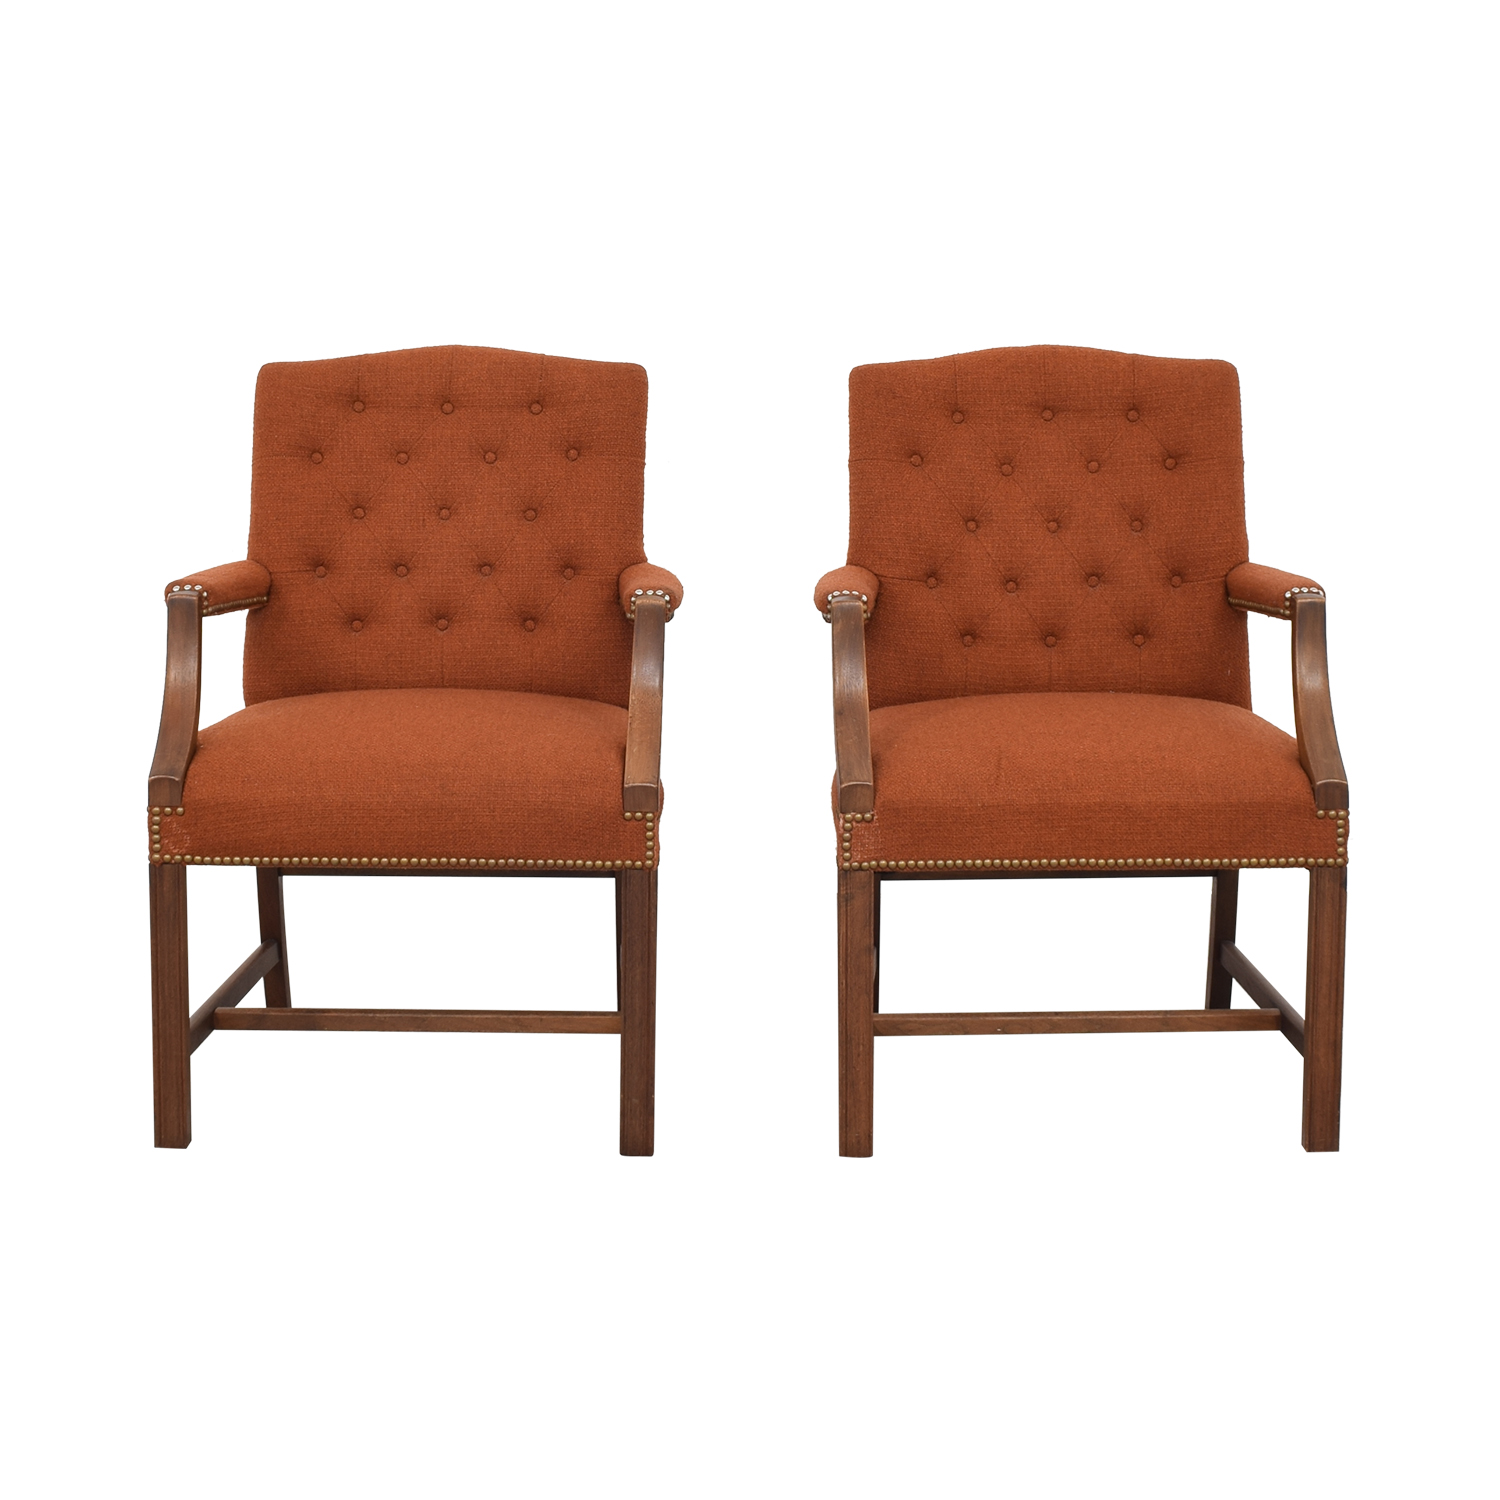 Kimball Kimball Nailhead Arm Chairs discount